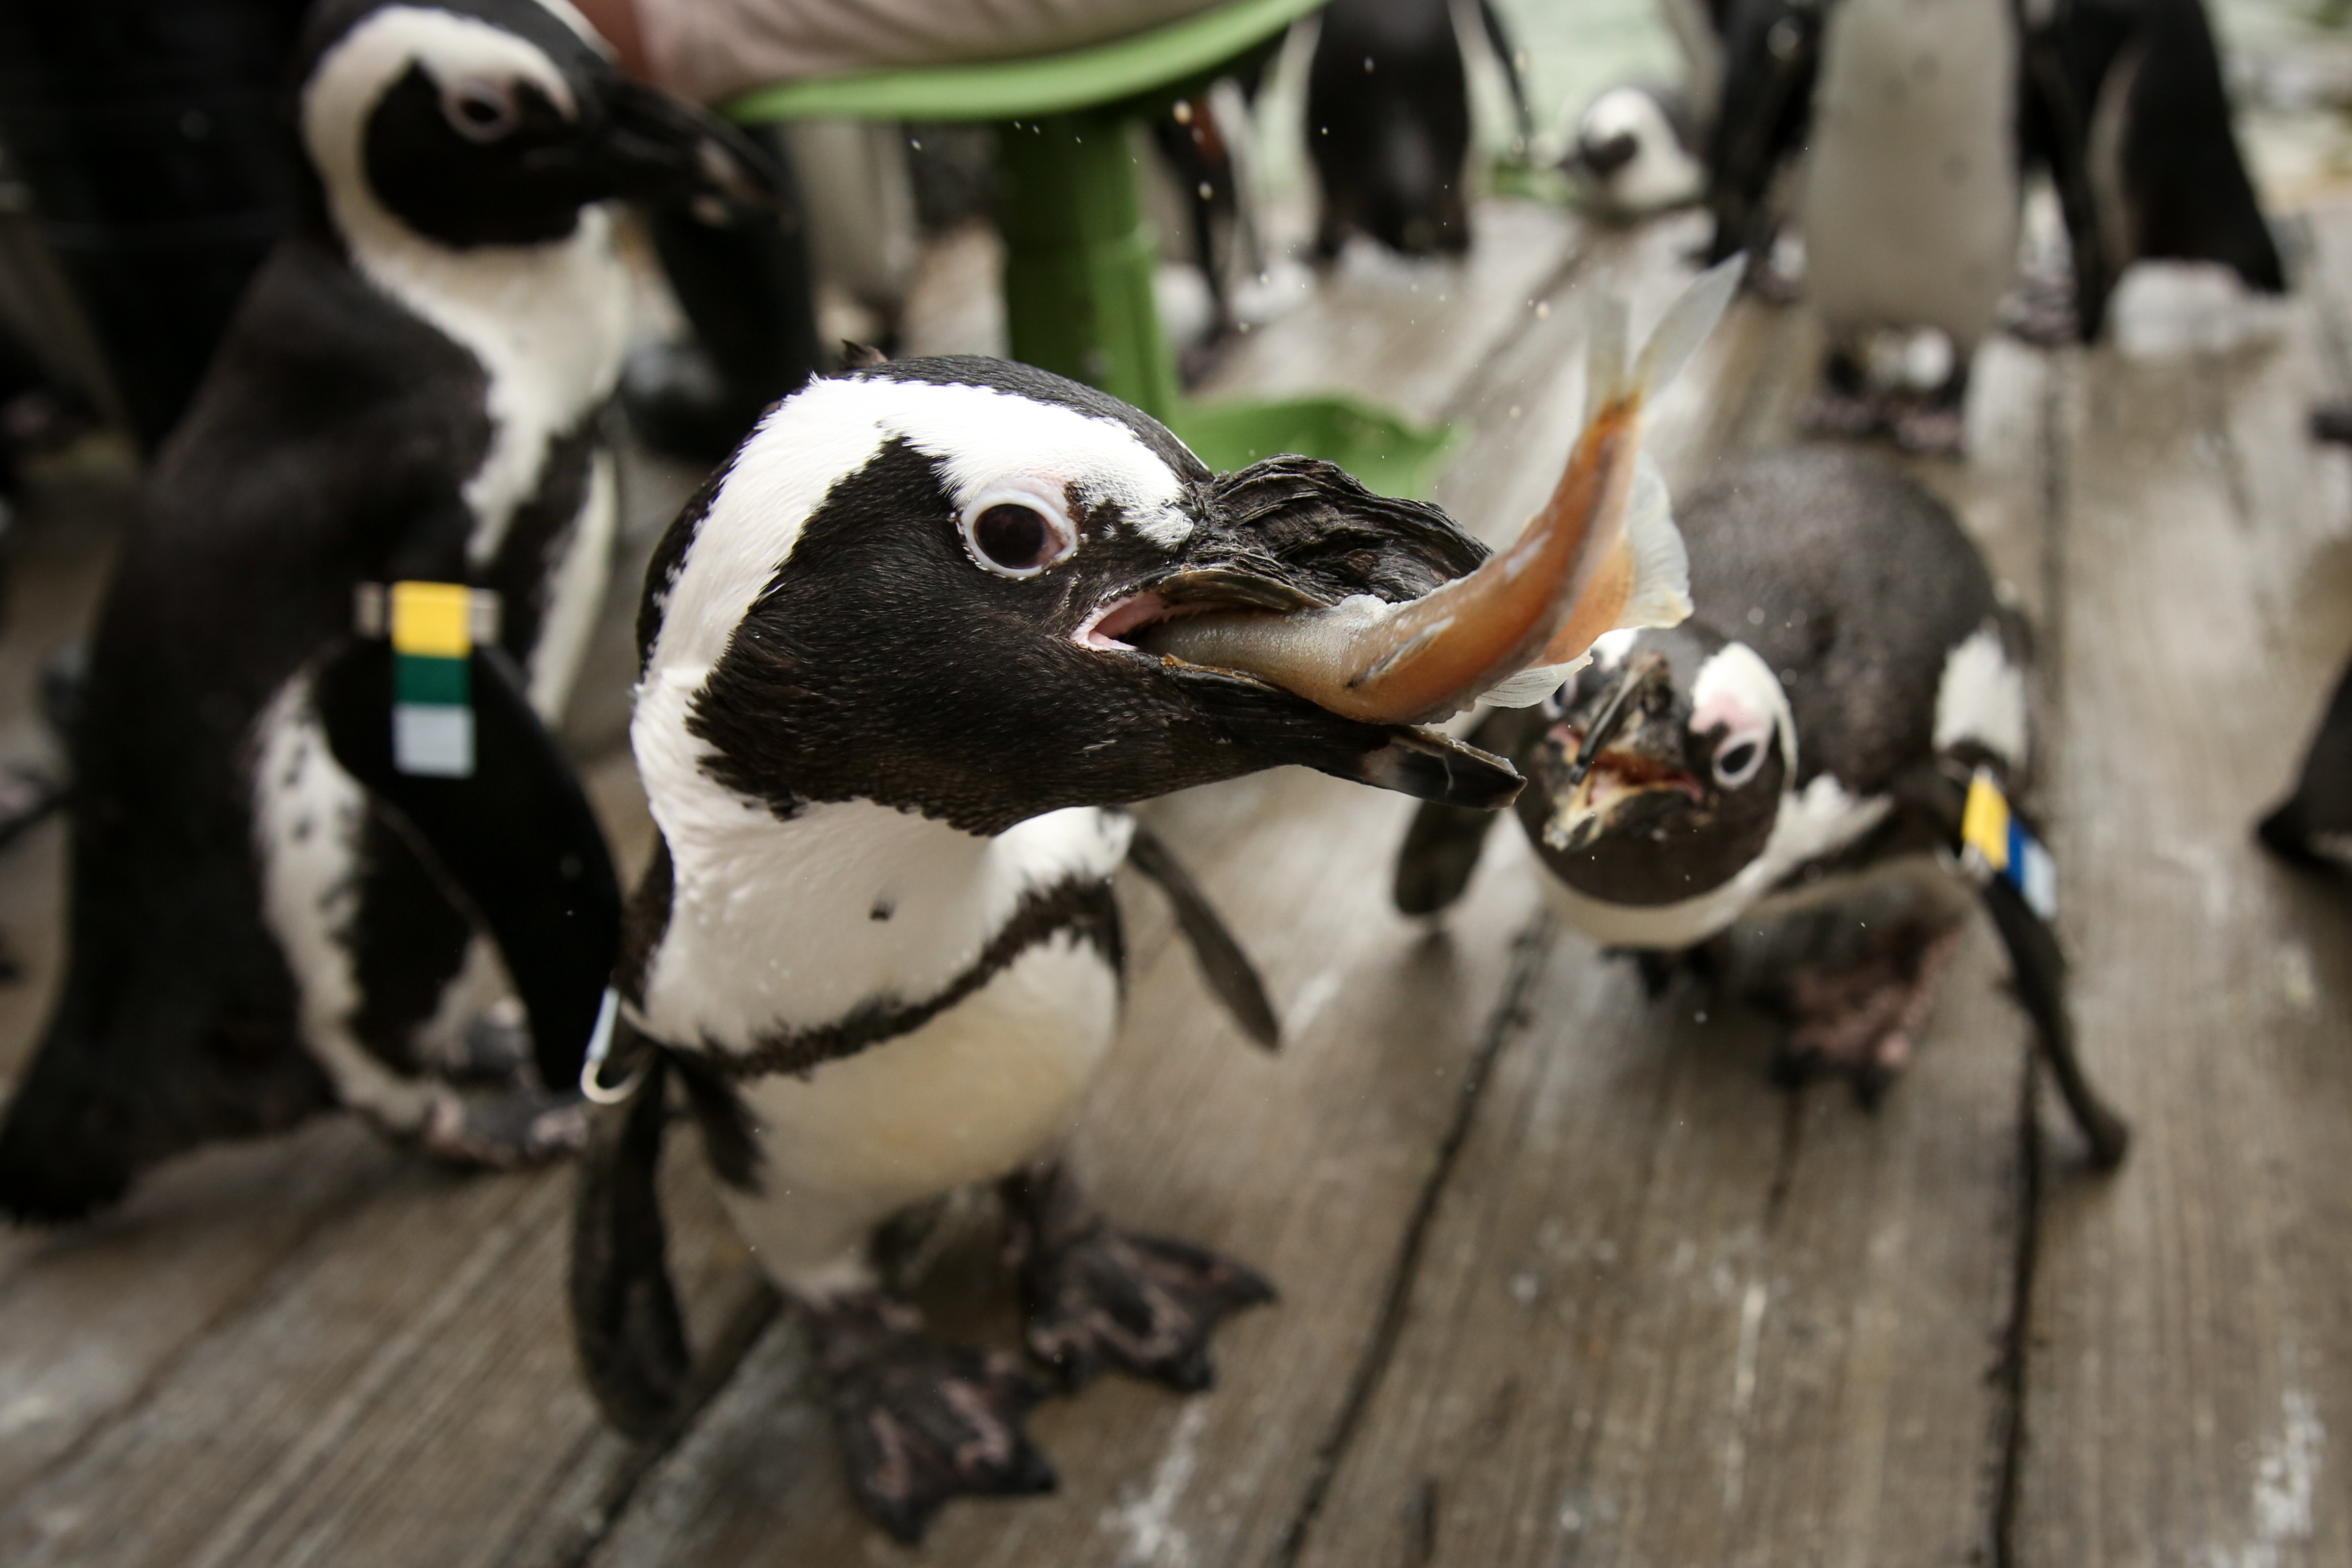 August, 2017. An African Penguin tries to steal a sardine from another penguin at the Baltimore Zoo.{&amp;nbsp;} (Amanda Andrade-Rhoades/DC Refined)<p></p>